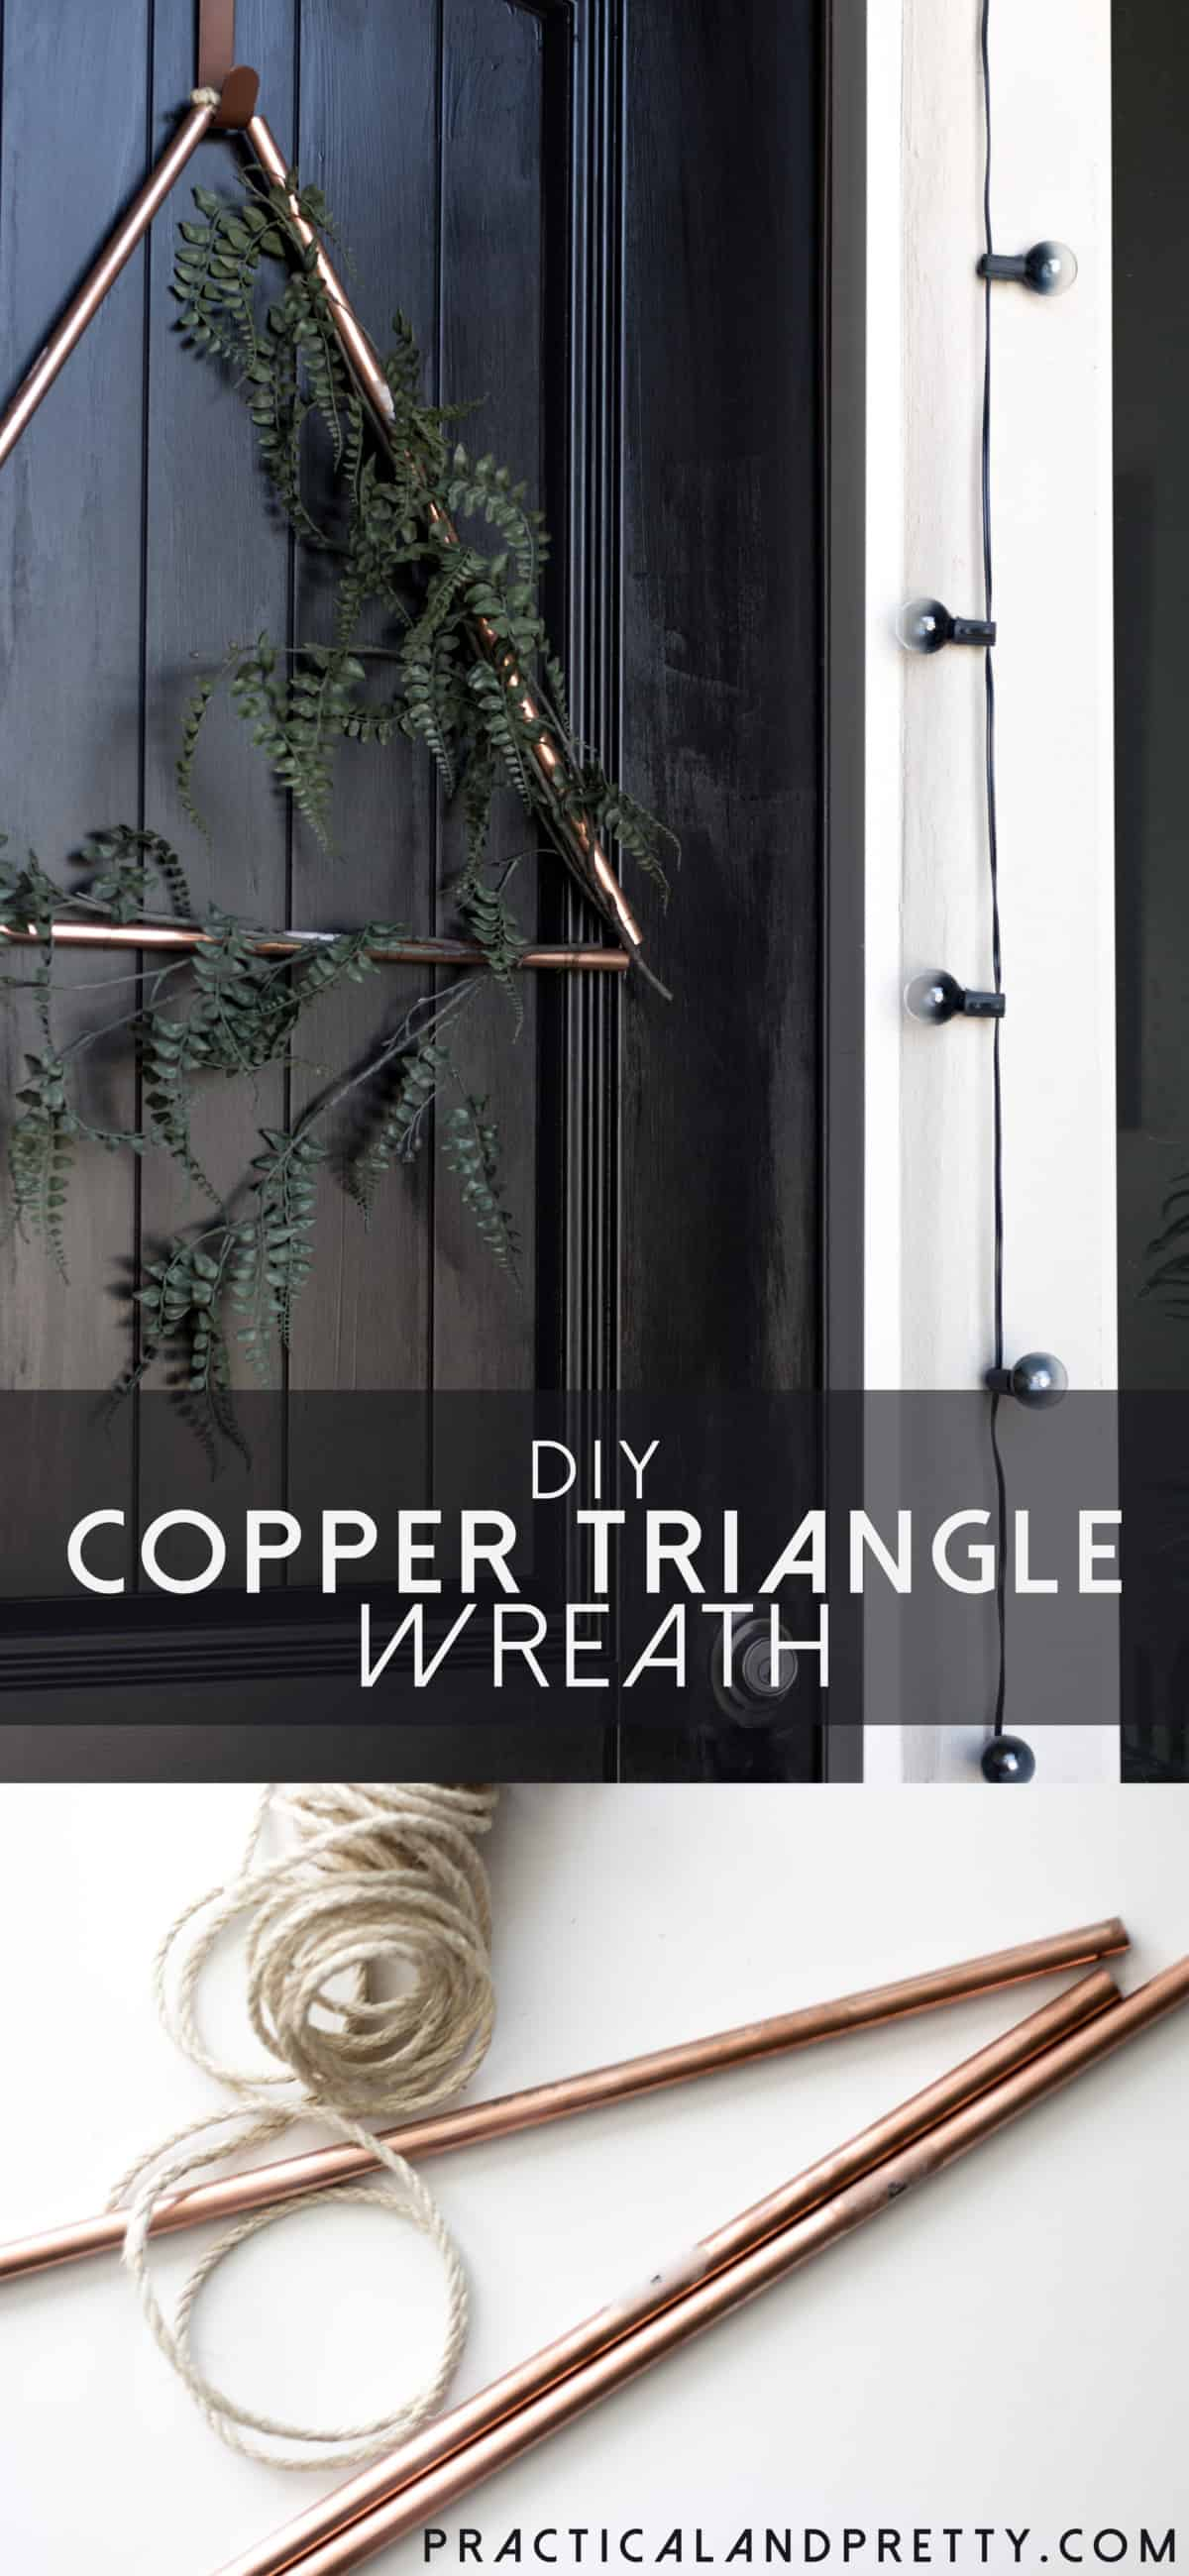 This DIY is simple but has a big impact on any door. I put it against my all black door for a little extra pop. Use foliage or keep it all metal!